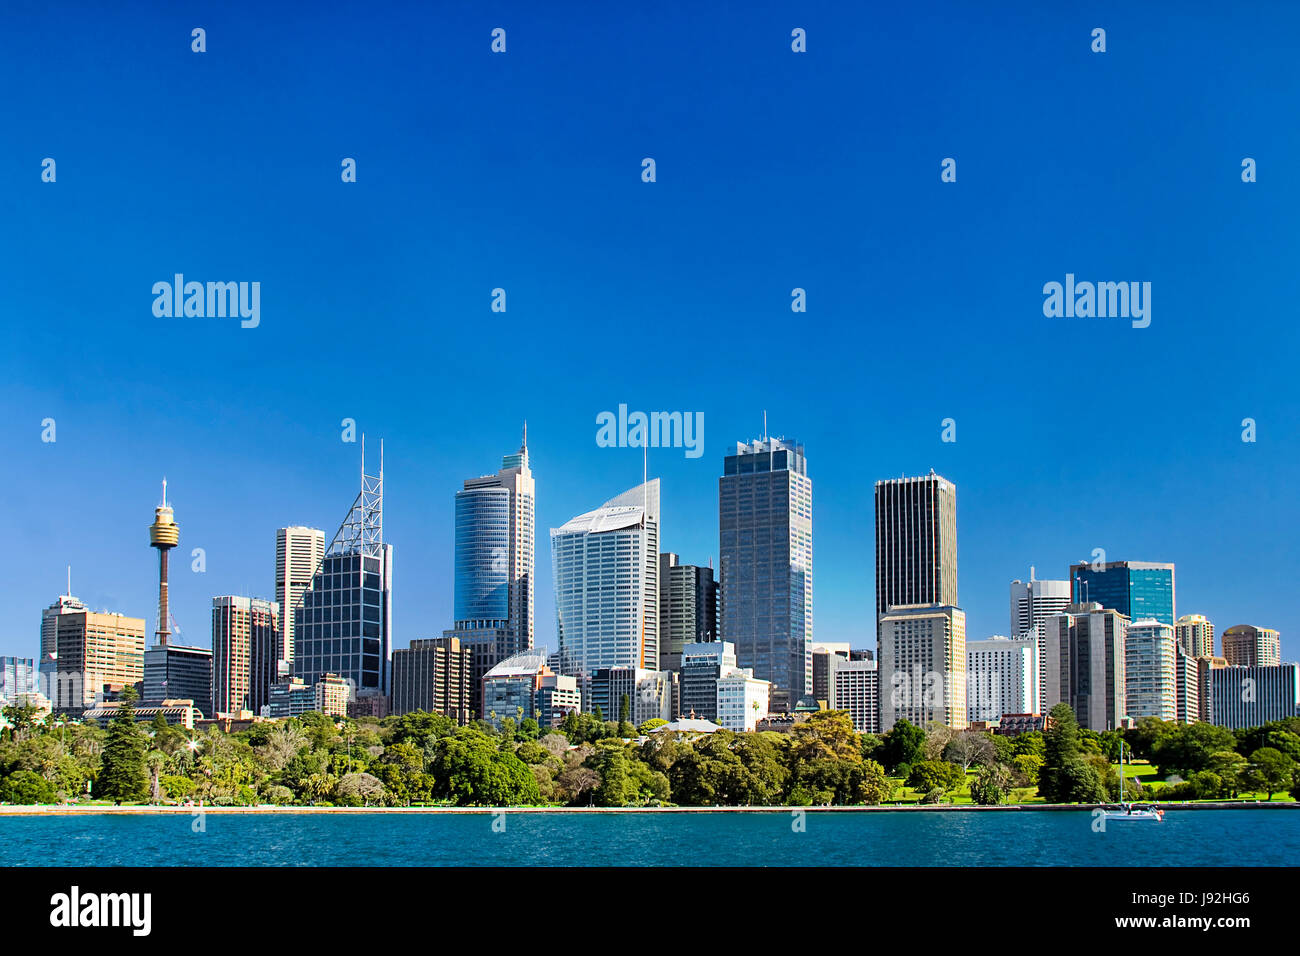 Sydney city central business district skyline over Royal botanic garden across blue waters of harbour under blue - Stock Image